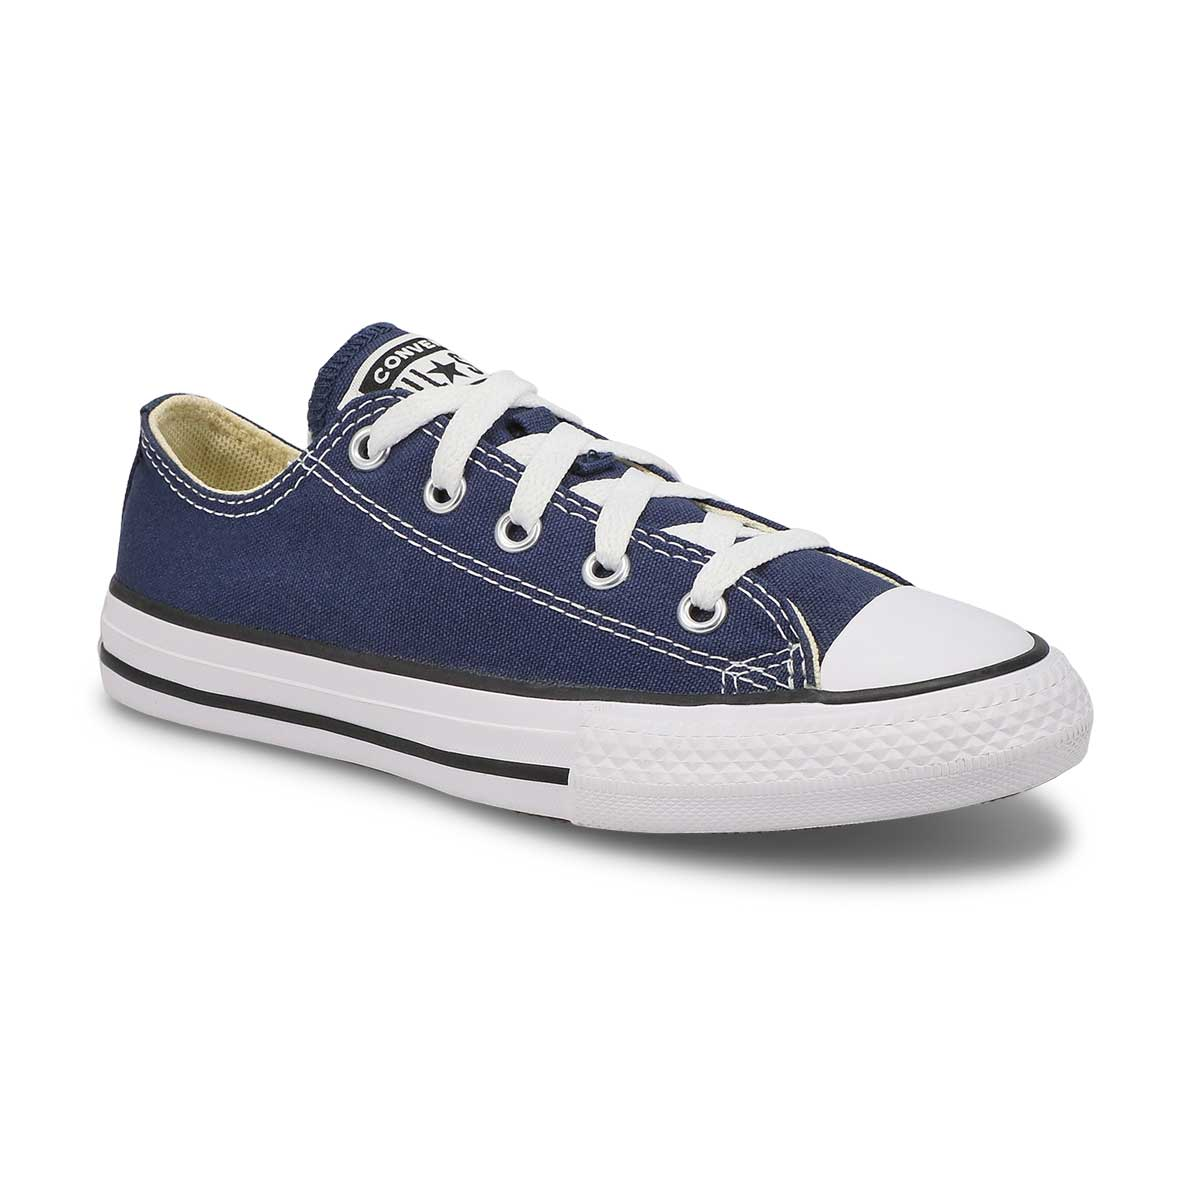 Kids' CHUCK TAYLOR ALL STAR navy sneakers